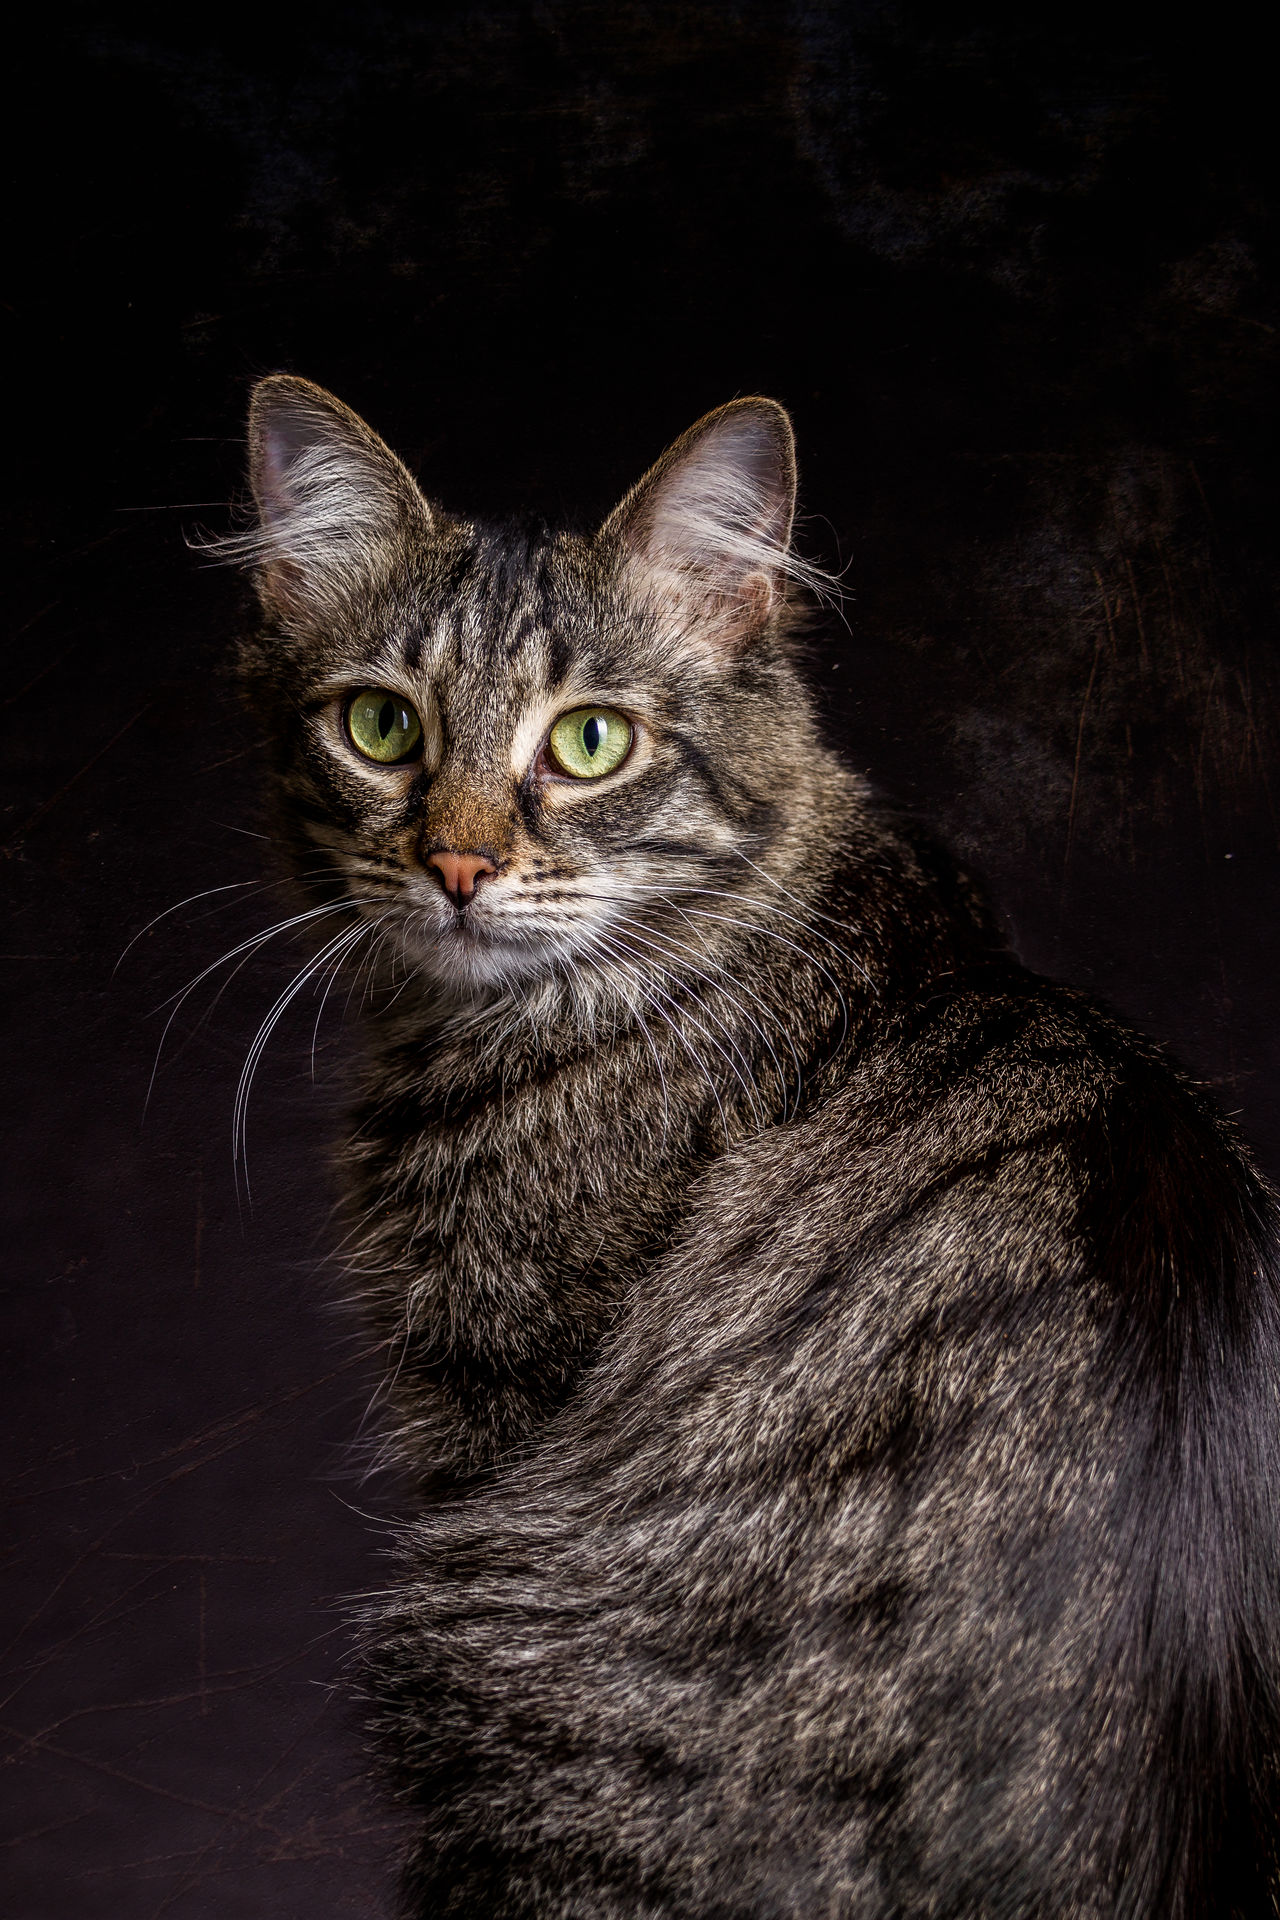 Housecat sitting attentively on black Background. Animal Themes Black Background Close-up Domestic Animals Domestic Cat Feline Indoors  Looking At Camera Mammal Night No People One Animal Pets Portrait Sitting Whisker